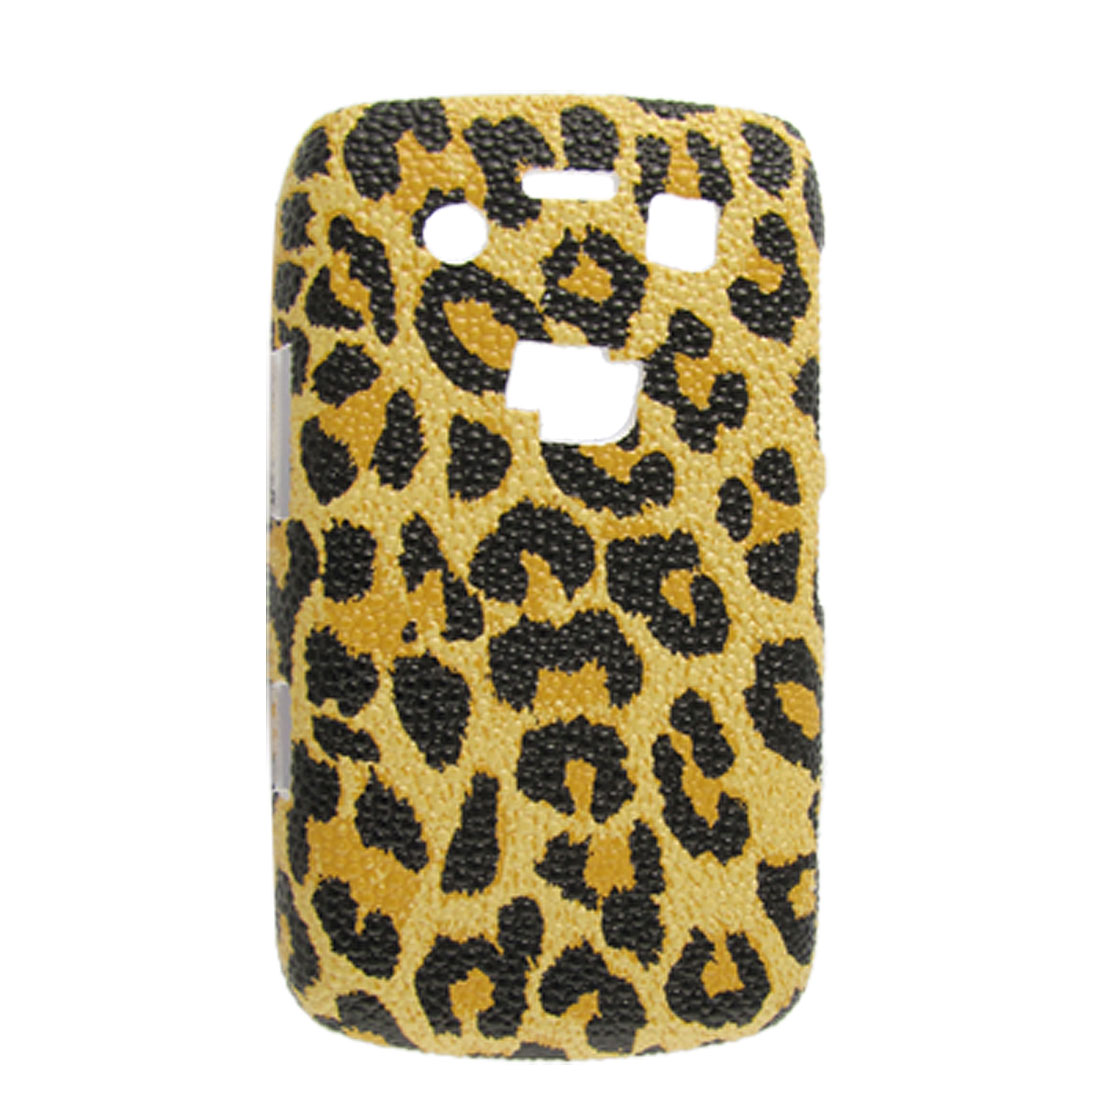 Leopard Print Orange Hard Plastic Back Case Cover for Blackberry 9700